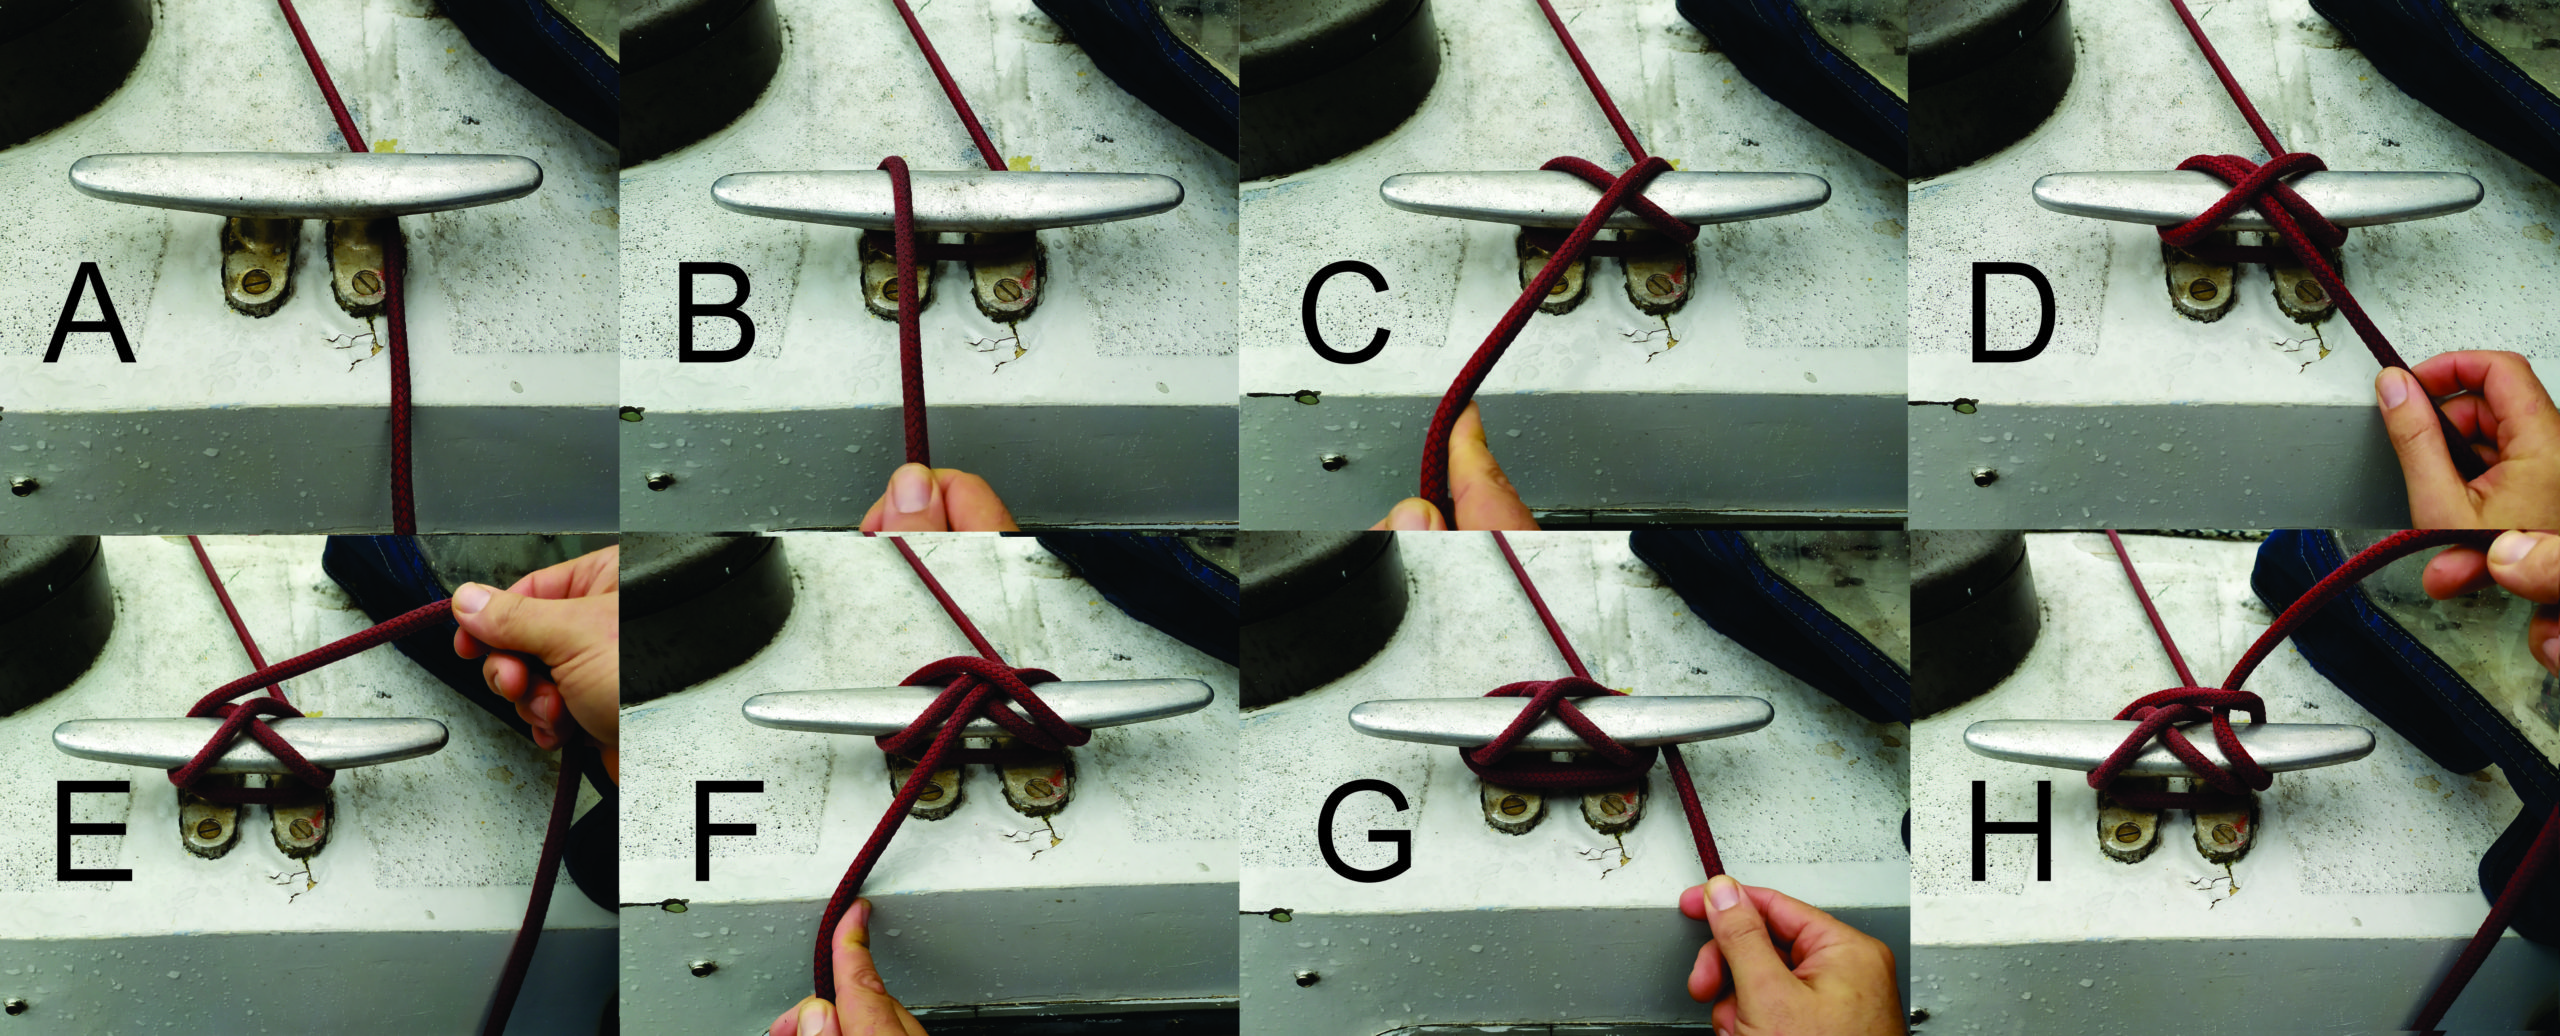 These are the steps to tie a proper cleat hitch knot.